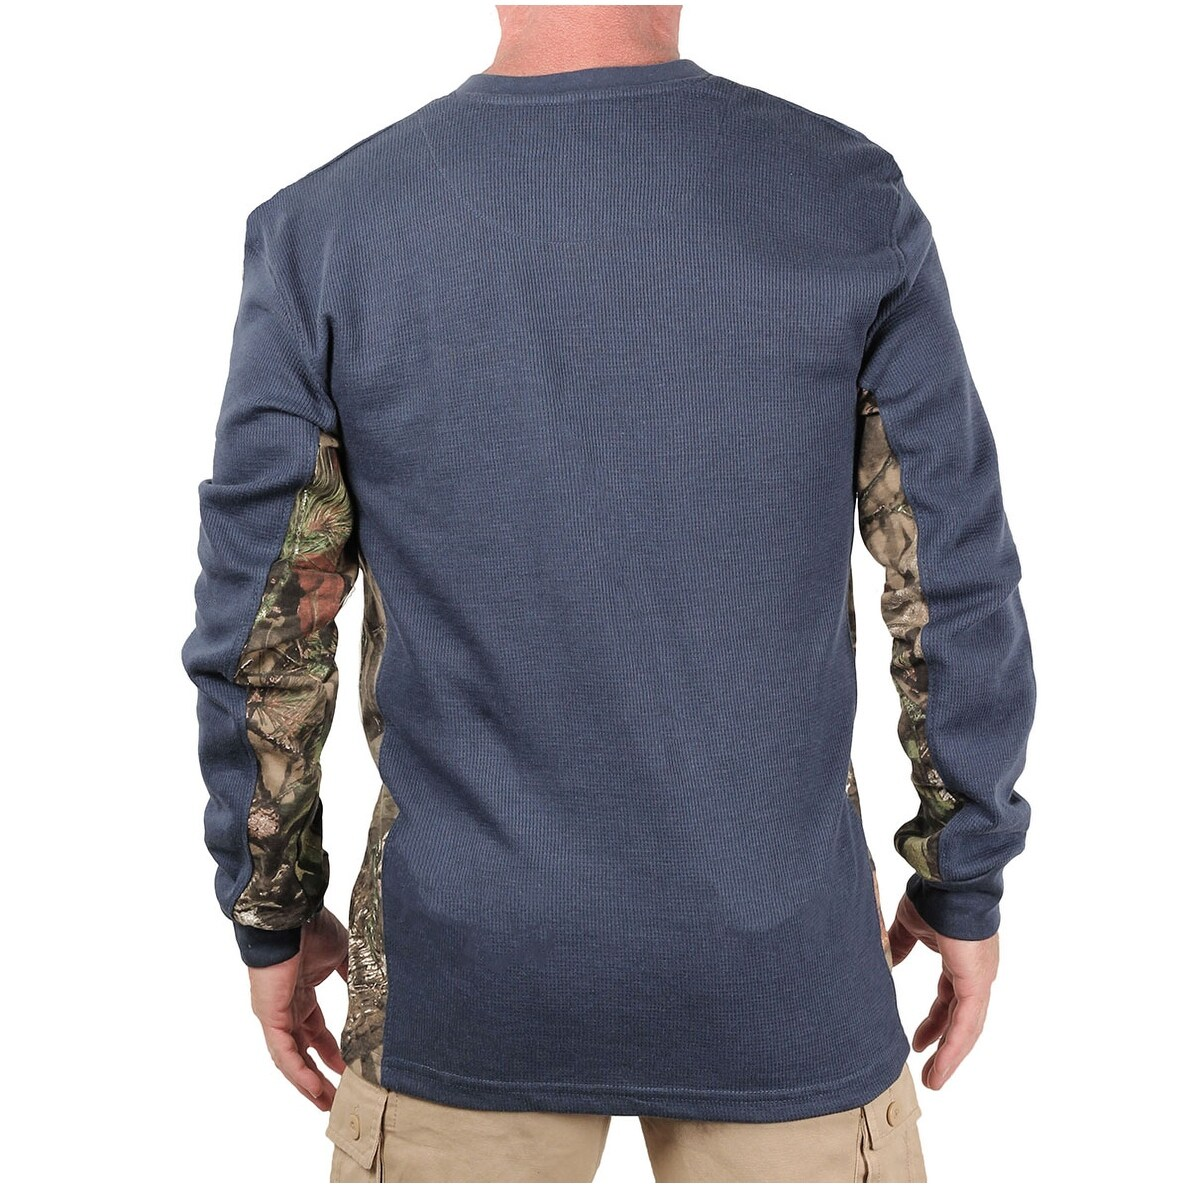 51748ec69bab5 Shop Mossy Oak Men's Thermal Henley Shirt - Free Shipping On Orders ...